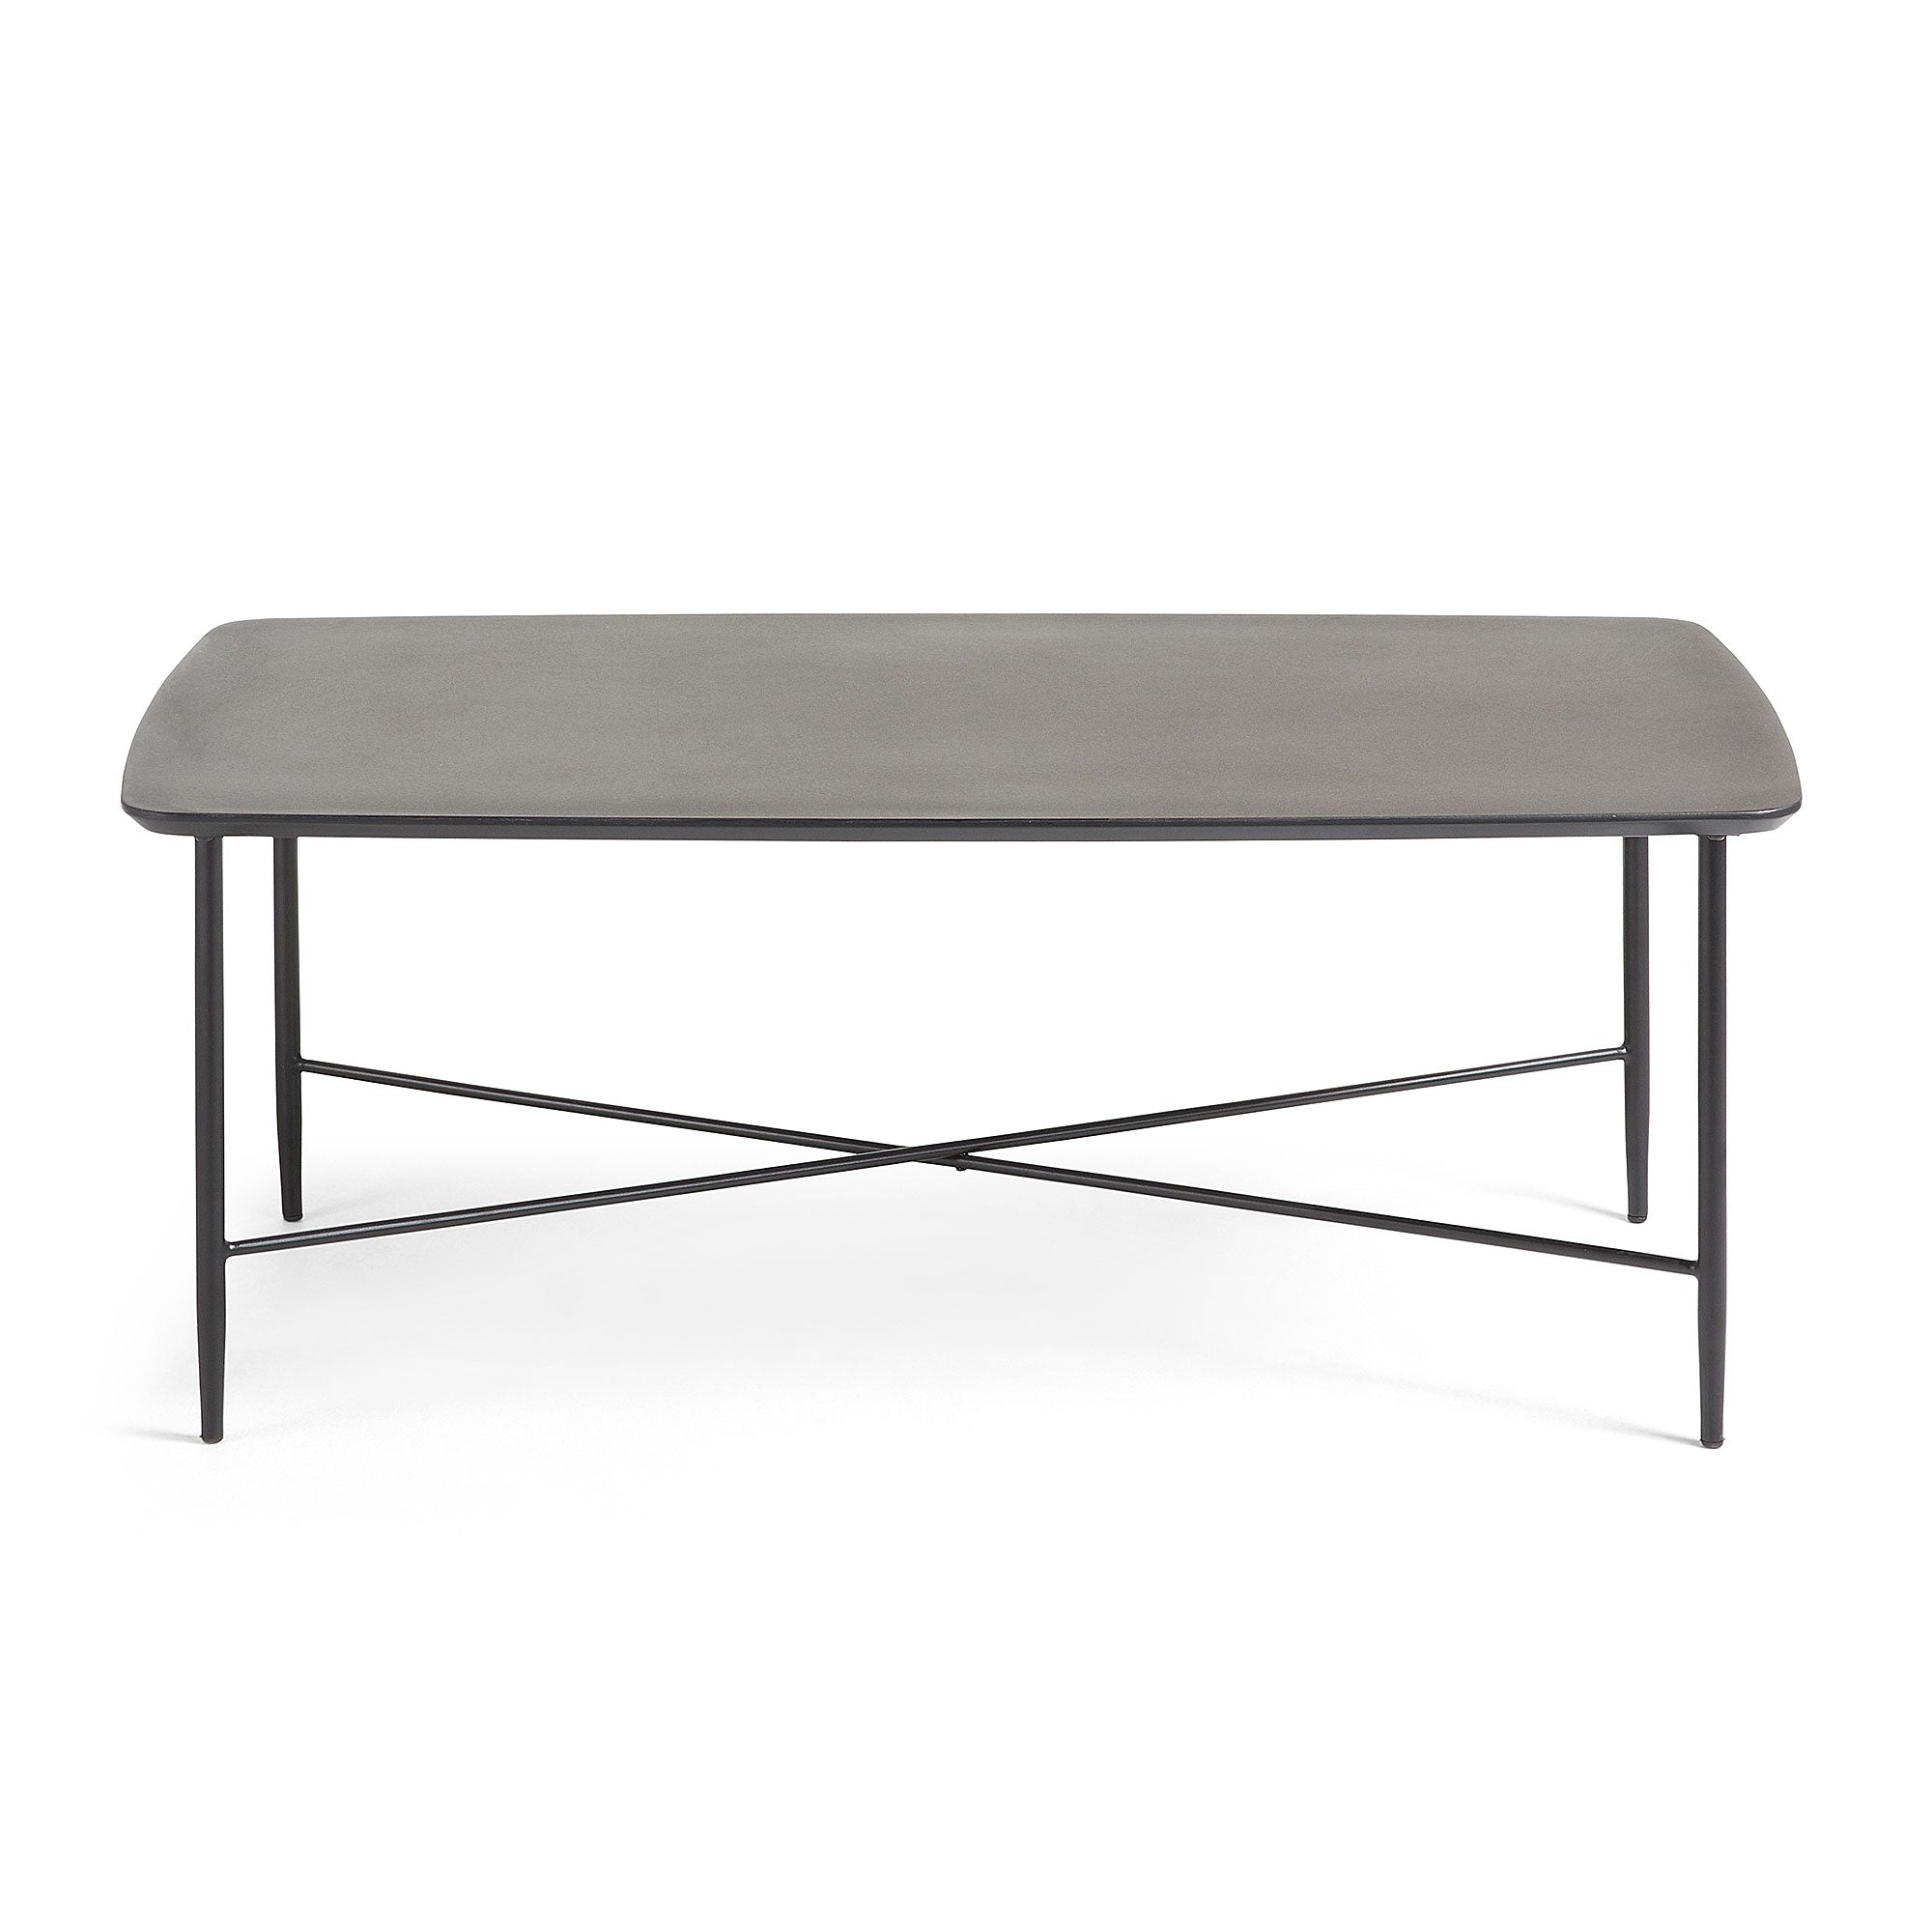 Smod Coffee table 110x60 Metal MDF Brown, Coffee Table - Home-Buy Interiors